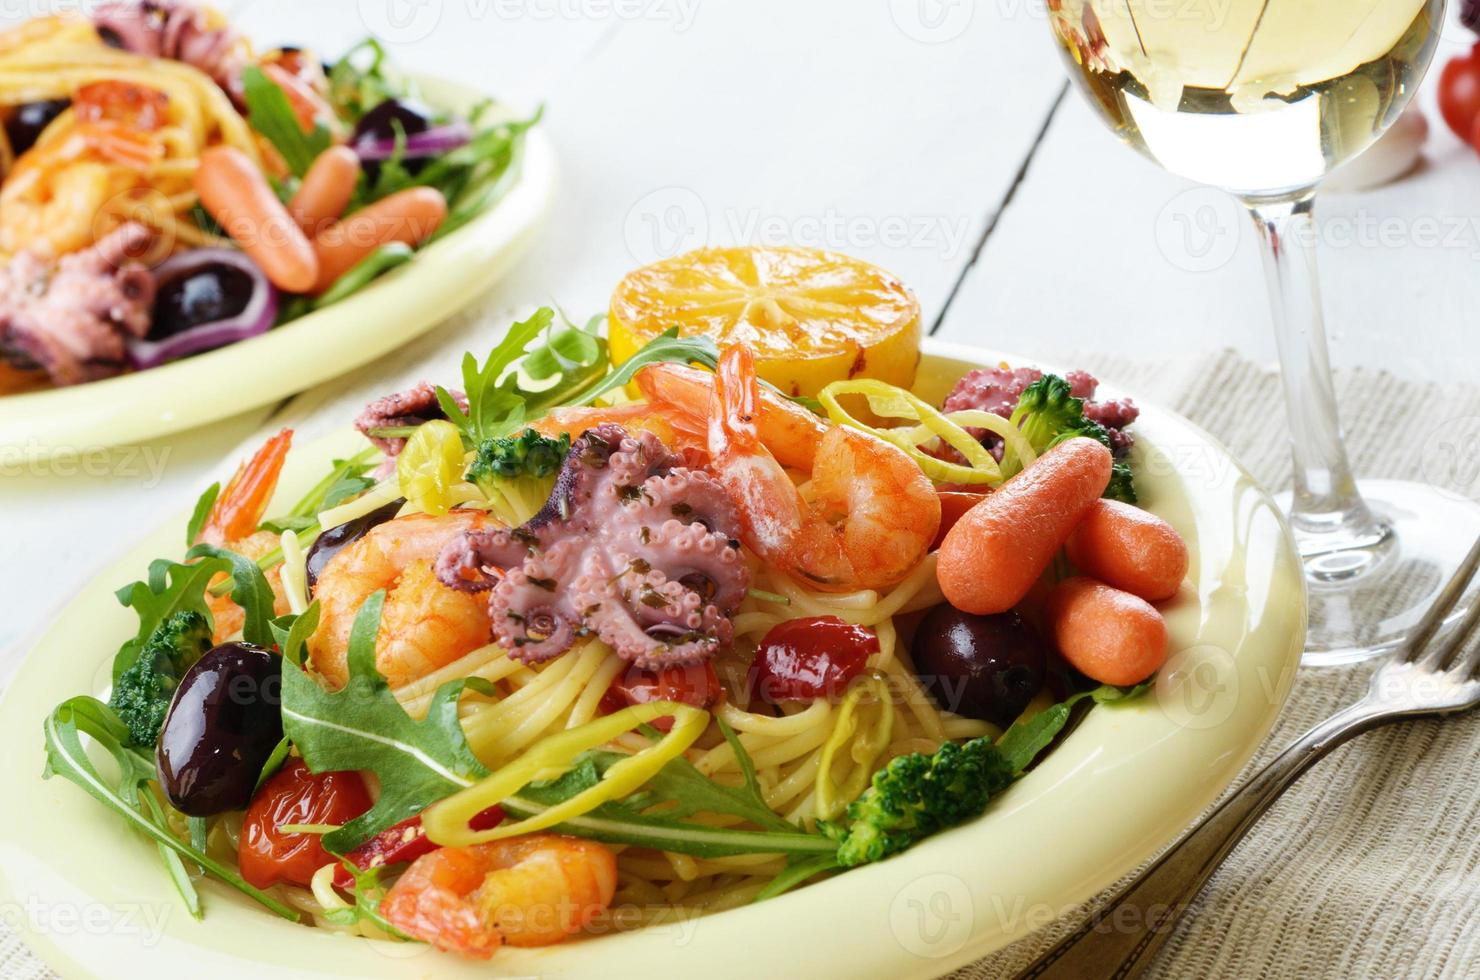 Seafood spaghetti pasta dish with octopus and shrimps photo